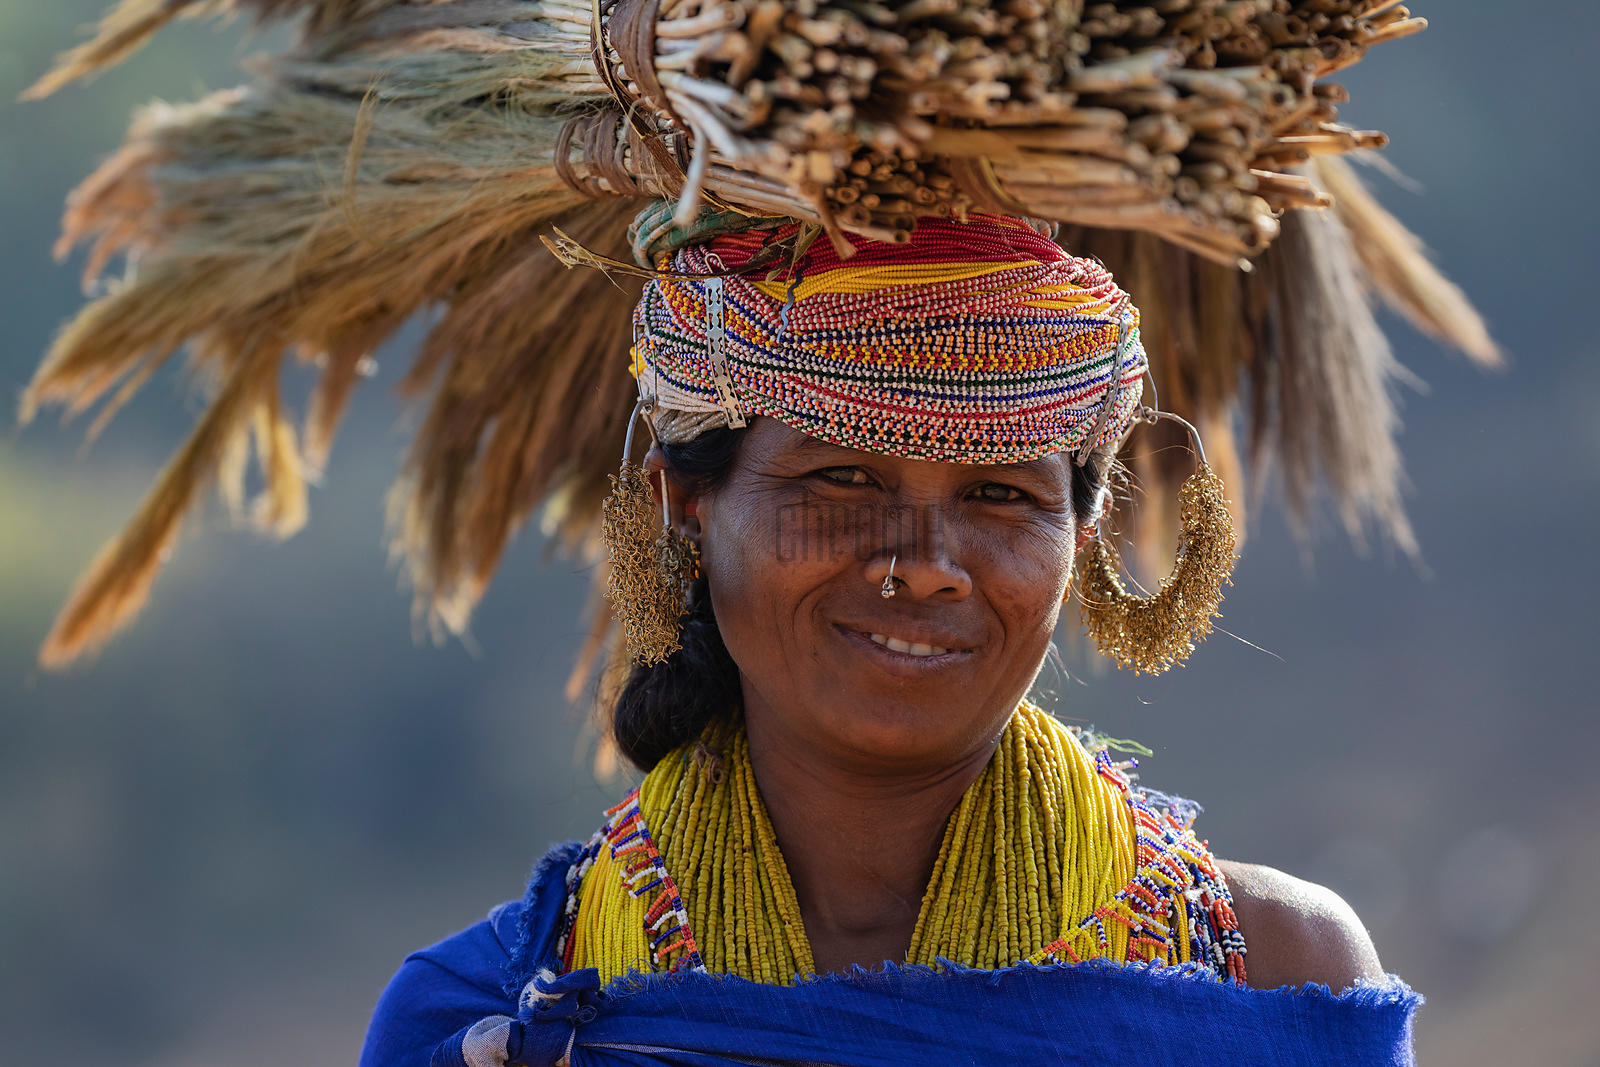 Portrait of a Woman from the Bonda Tribe Carrying Brooms to be Sold at a Market